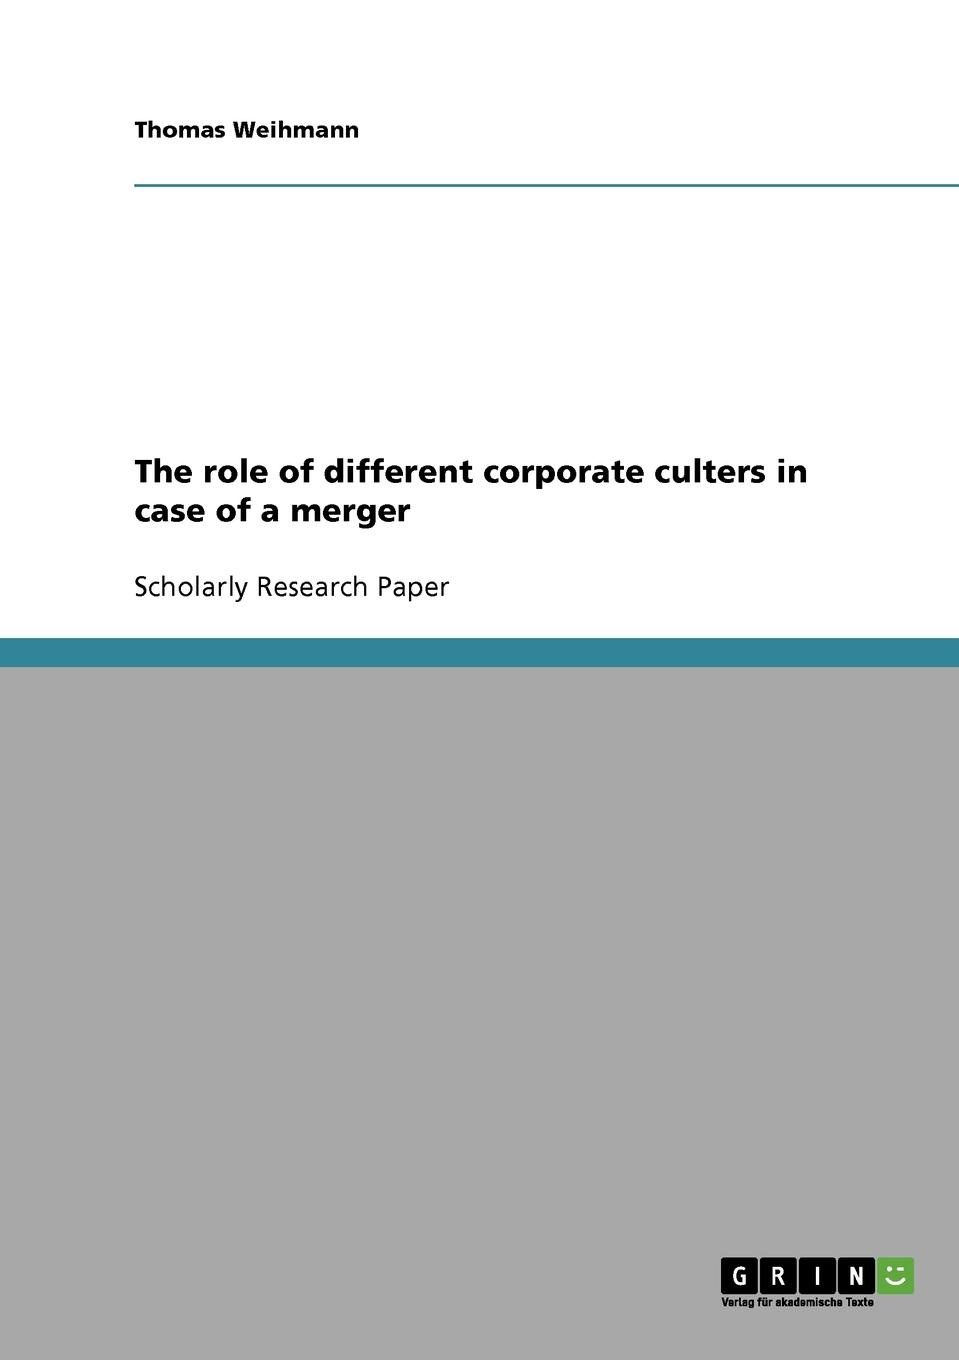 Thomas Weihmann The role of different corporate culters in case of a merger halil kiymaz market microstructure in emerging and developed markets price discovery information flows and transaction costs